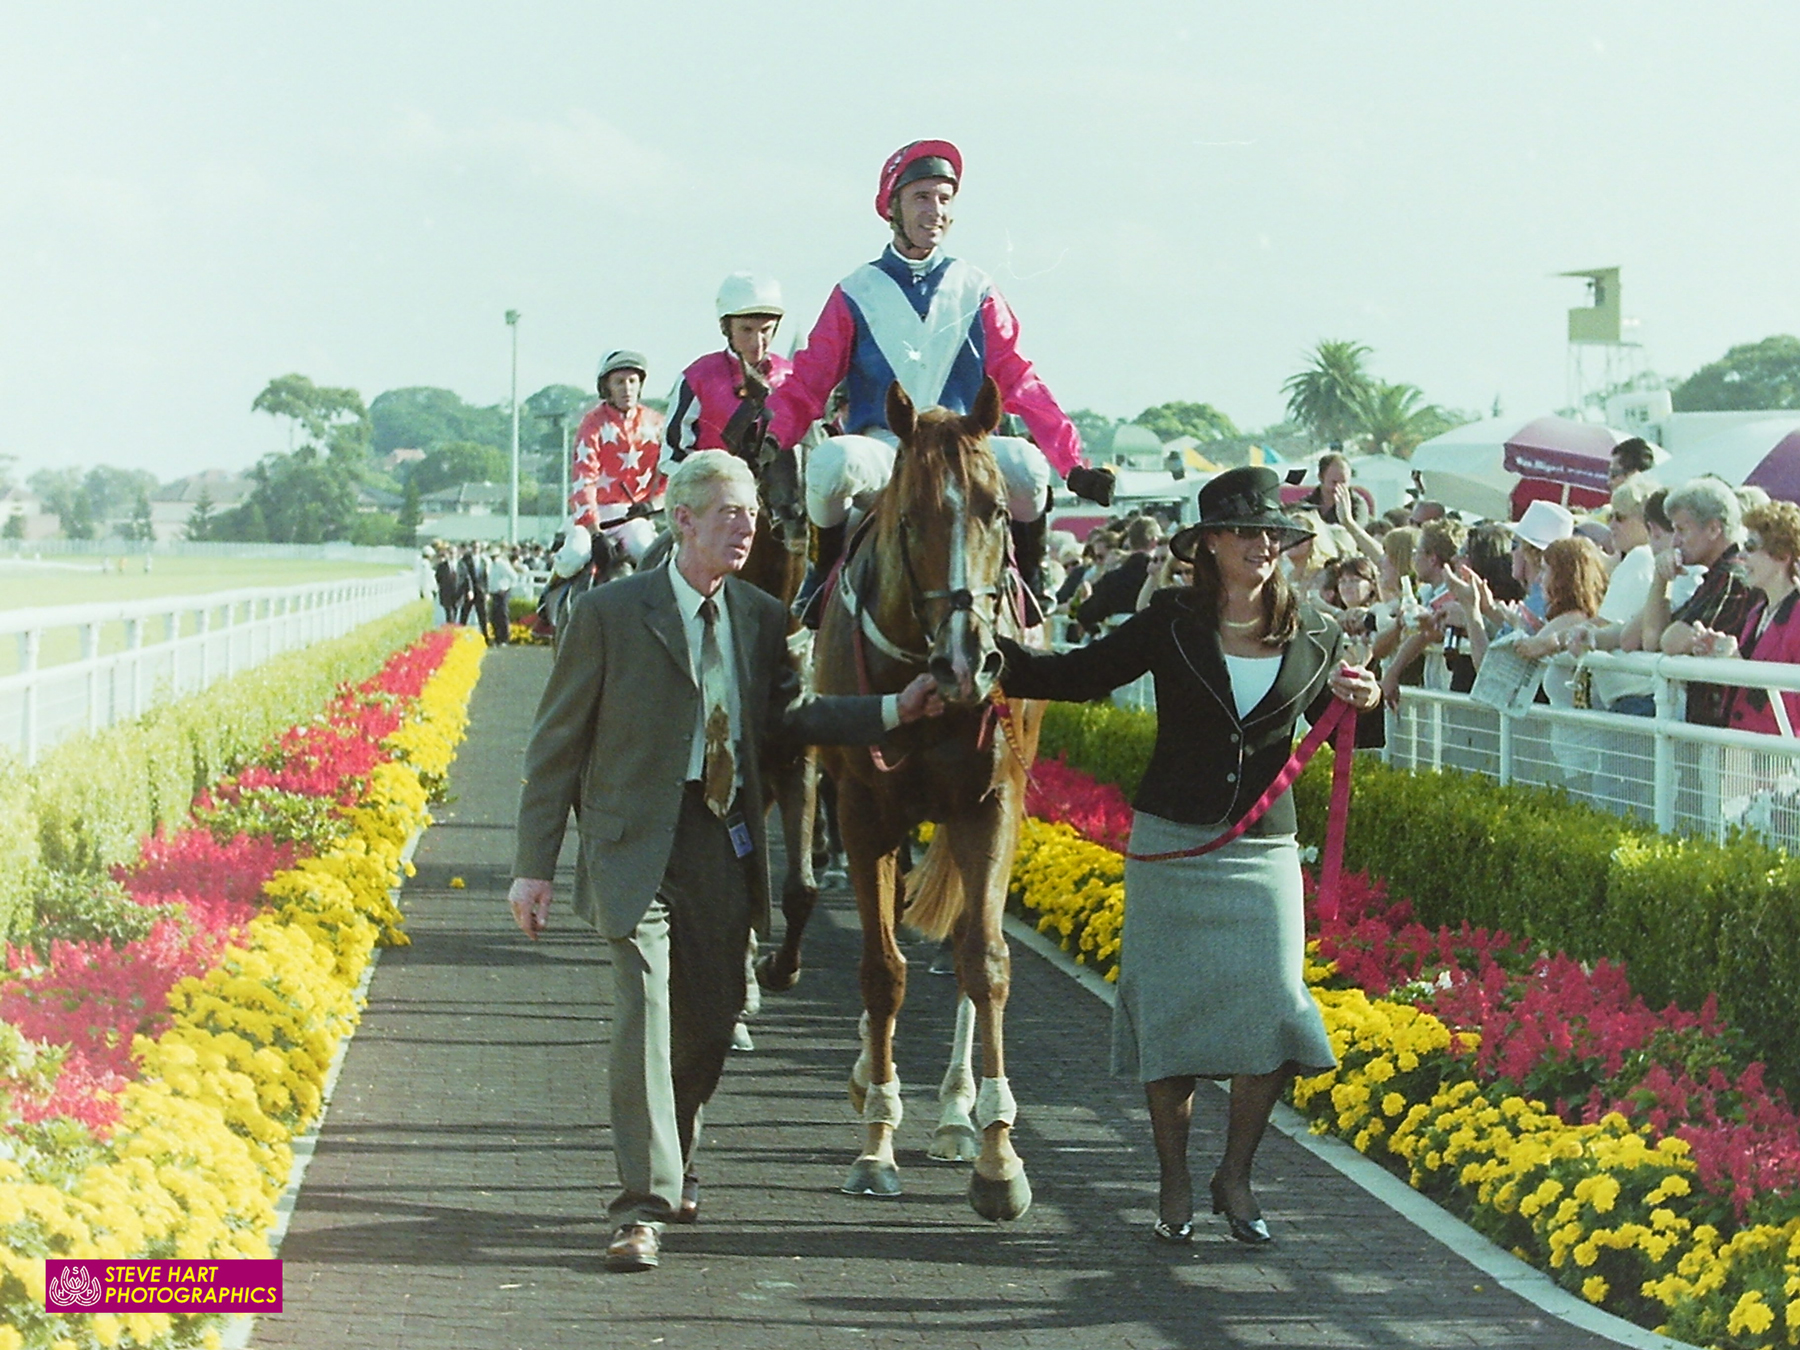 Image courtesy Steve Hart Photographics - Starcraft after his Derby triumph 2004.